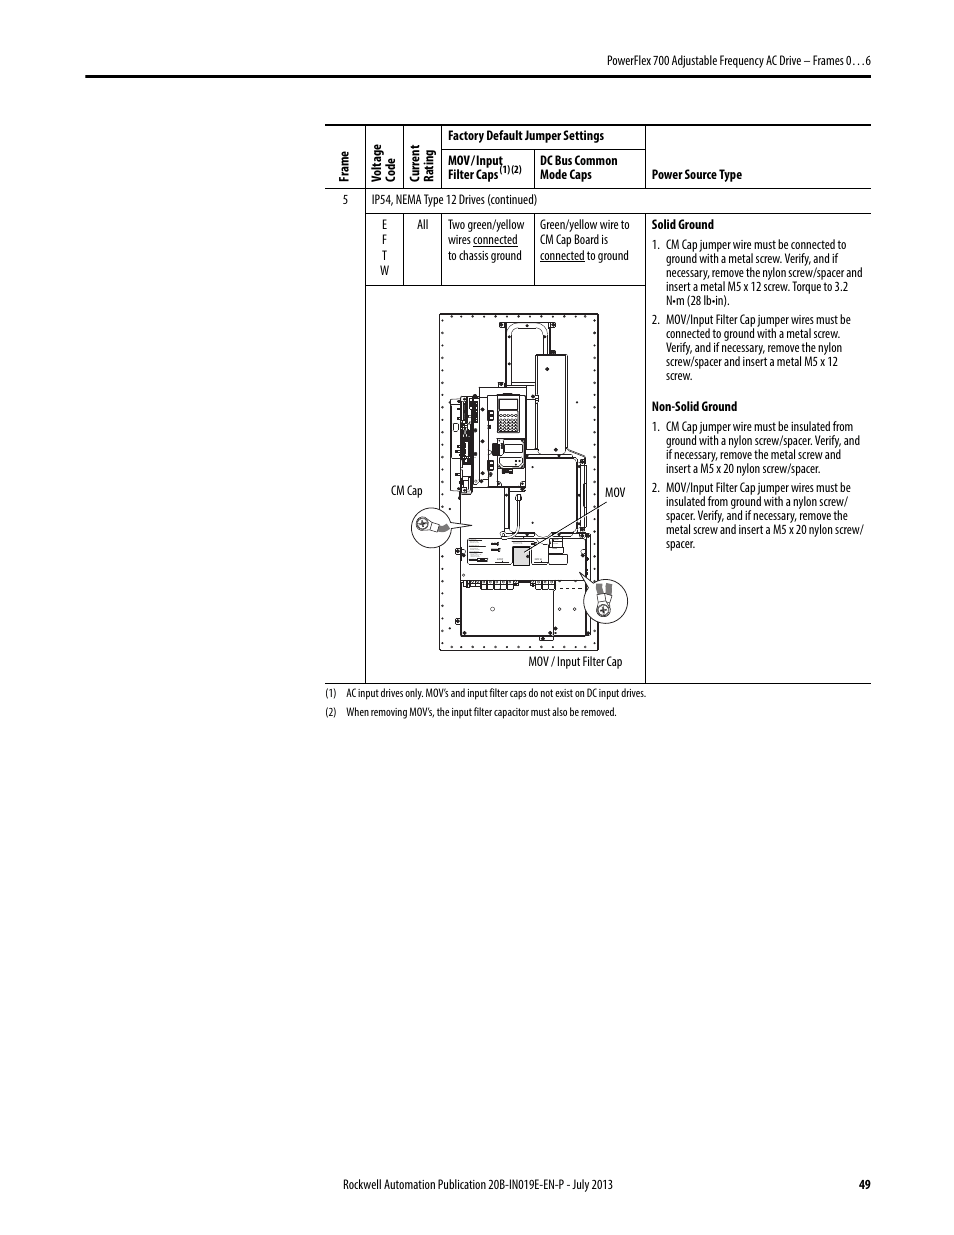 hight resolution of rockwell automation 20b powerflex 700 installation instructions frames 0 6 user manual page